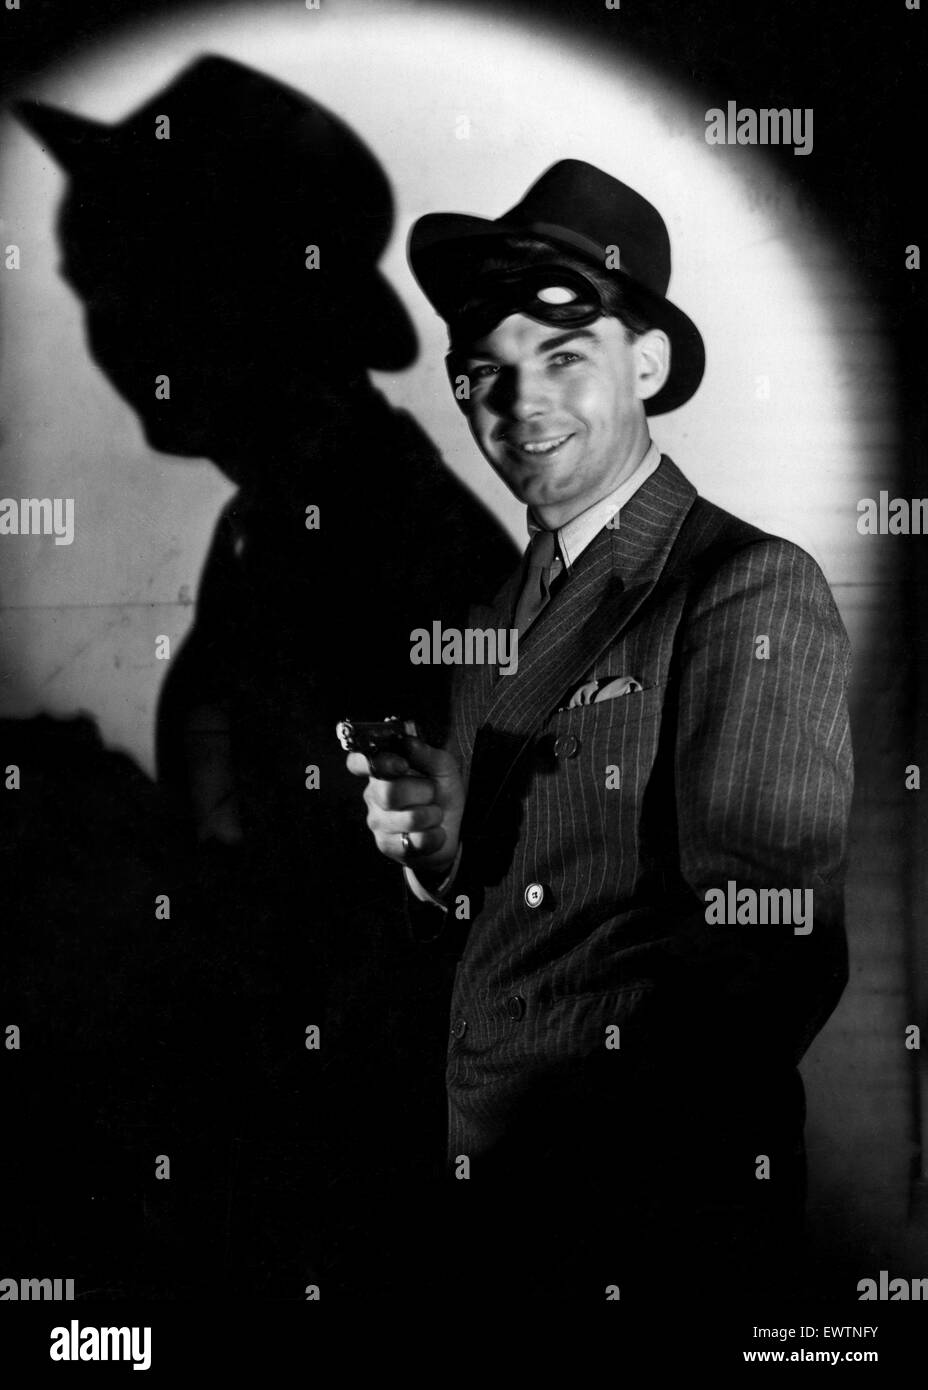 Gunman, studio shoot for Mirror feature 'Would You Kill A Man for £700' 23rd September 1937 - Stock Image